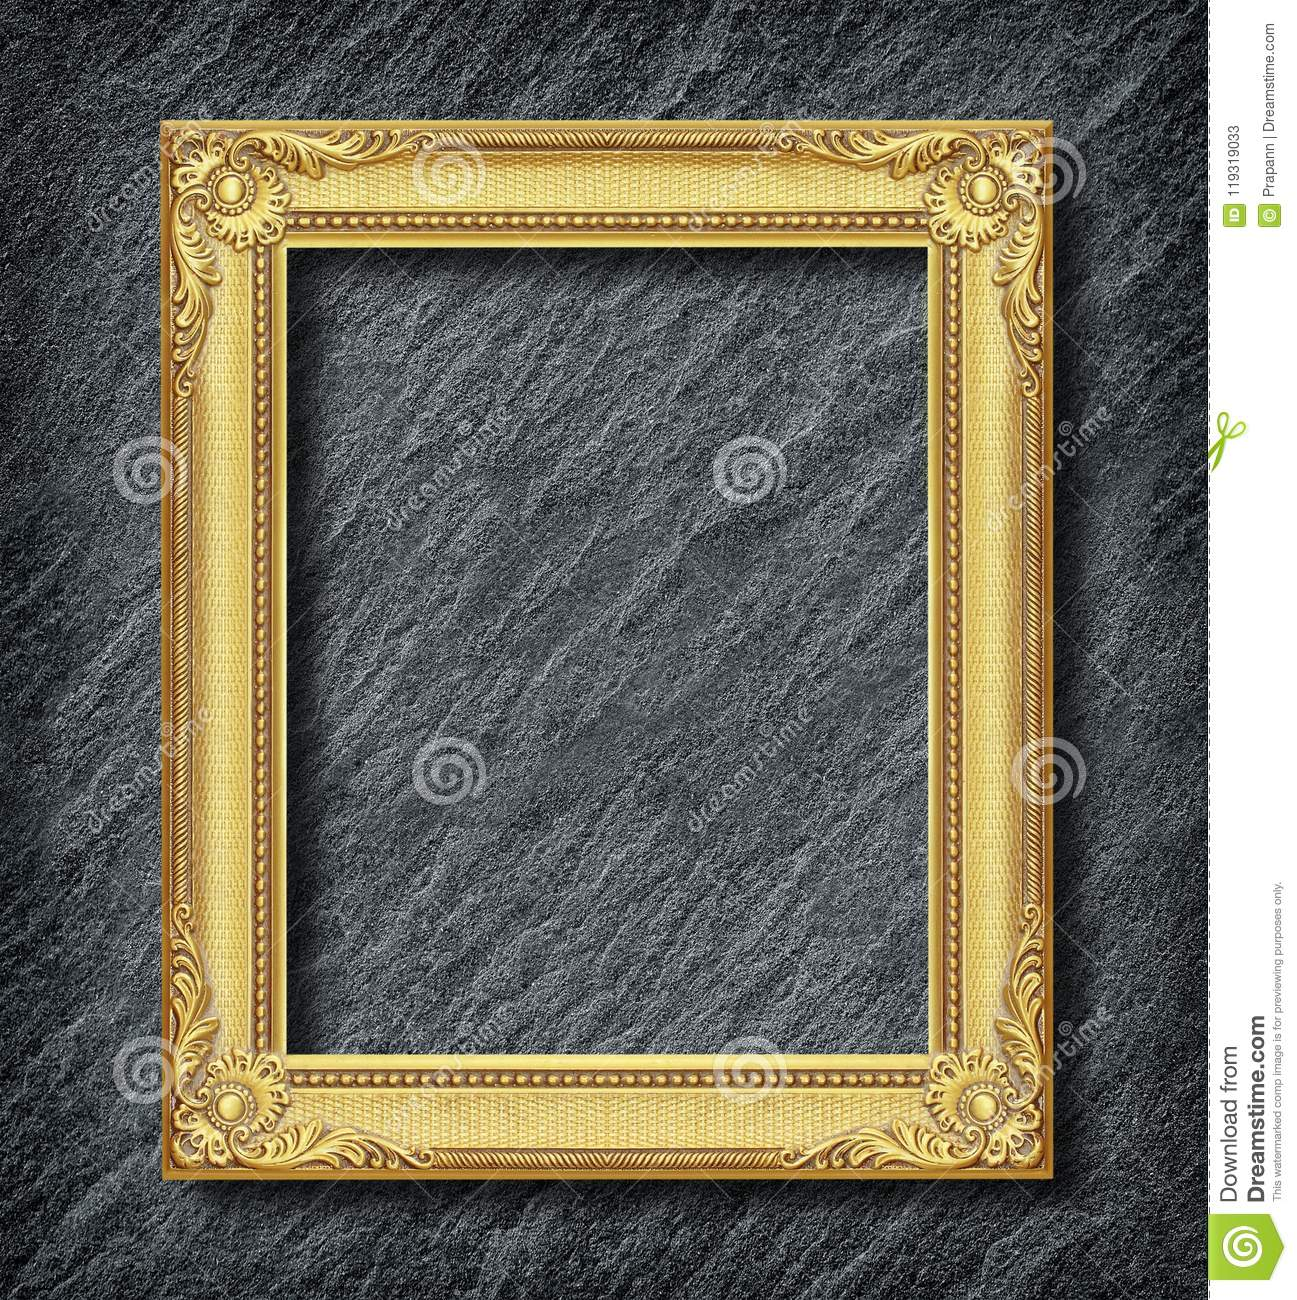 f15e96ceb2ca Gold Frame Stock Images - Download 94